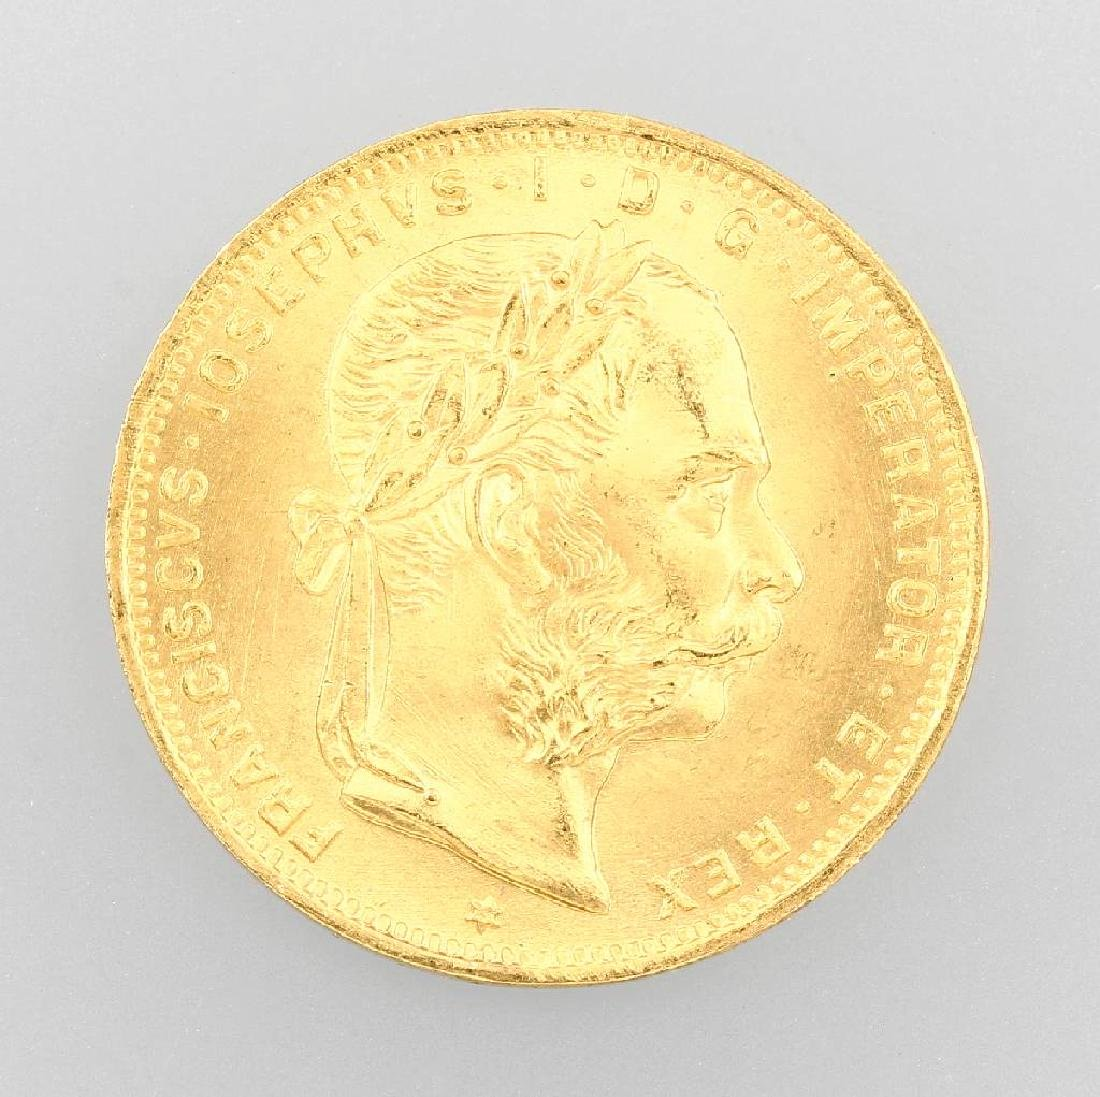 Gold coin, 8 Florin 20 Swiss Francs, Austria- Hungary,